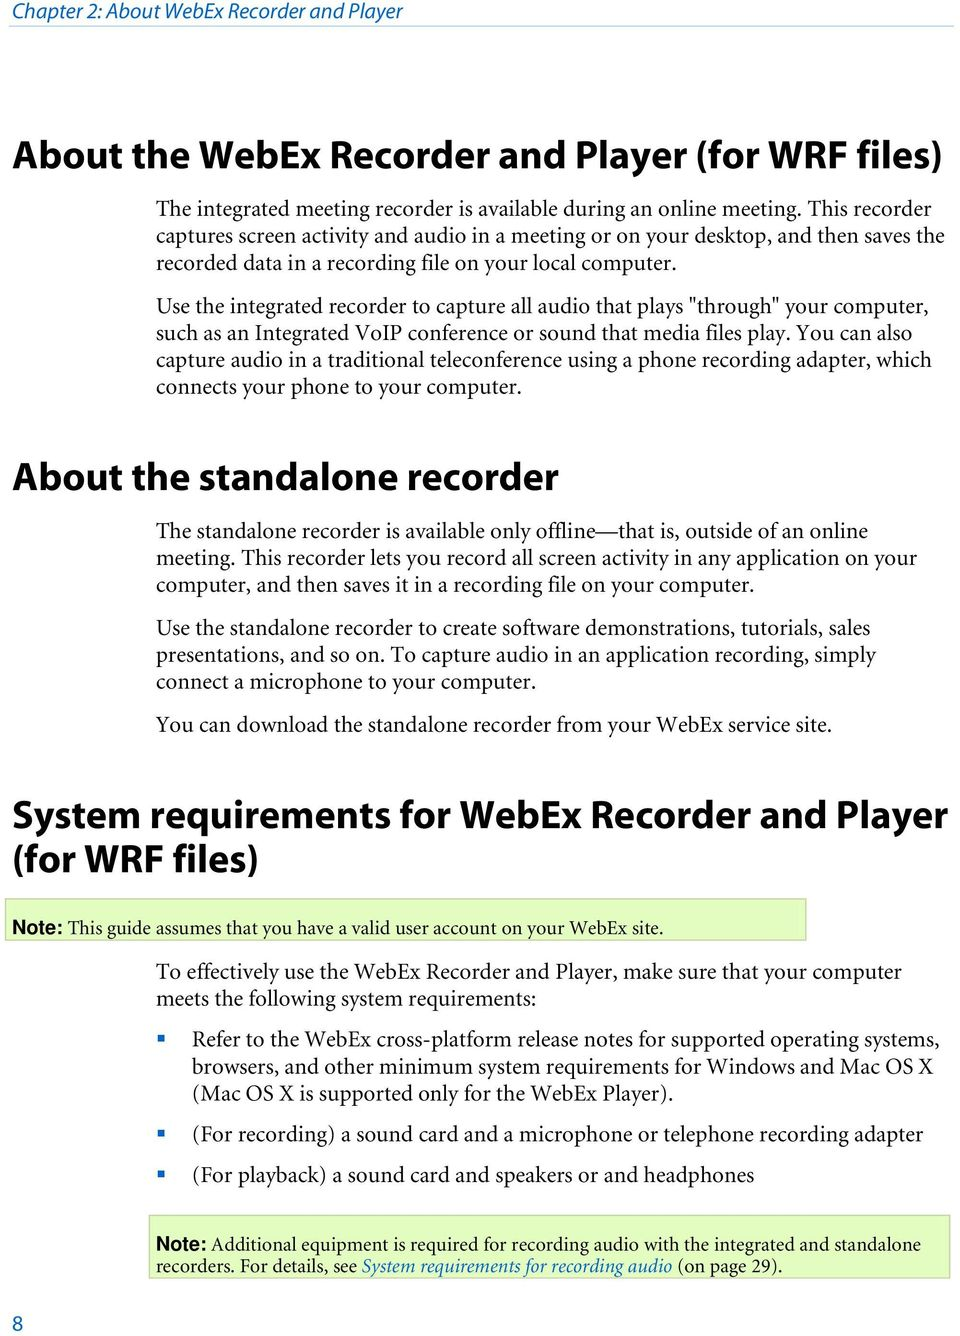 WebEx Recorder and Player - PDF